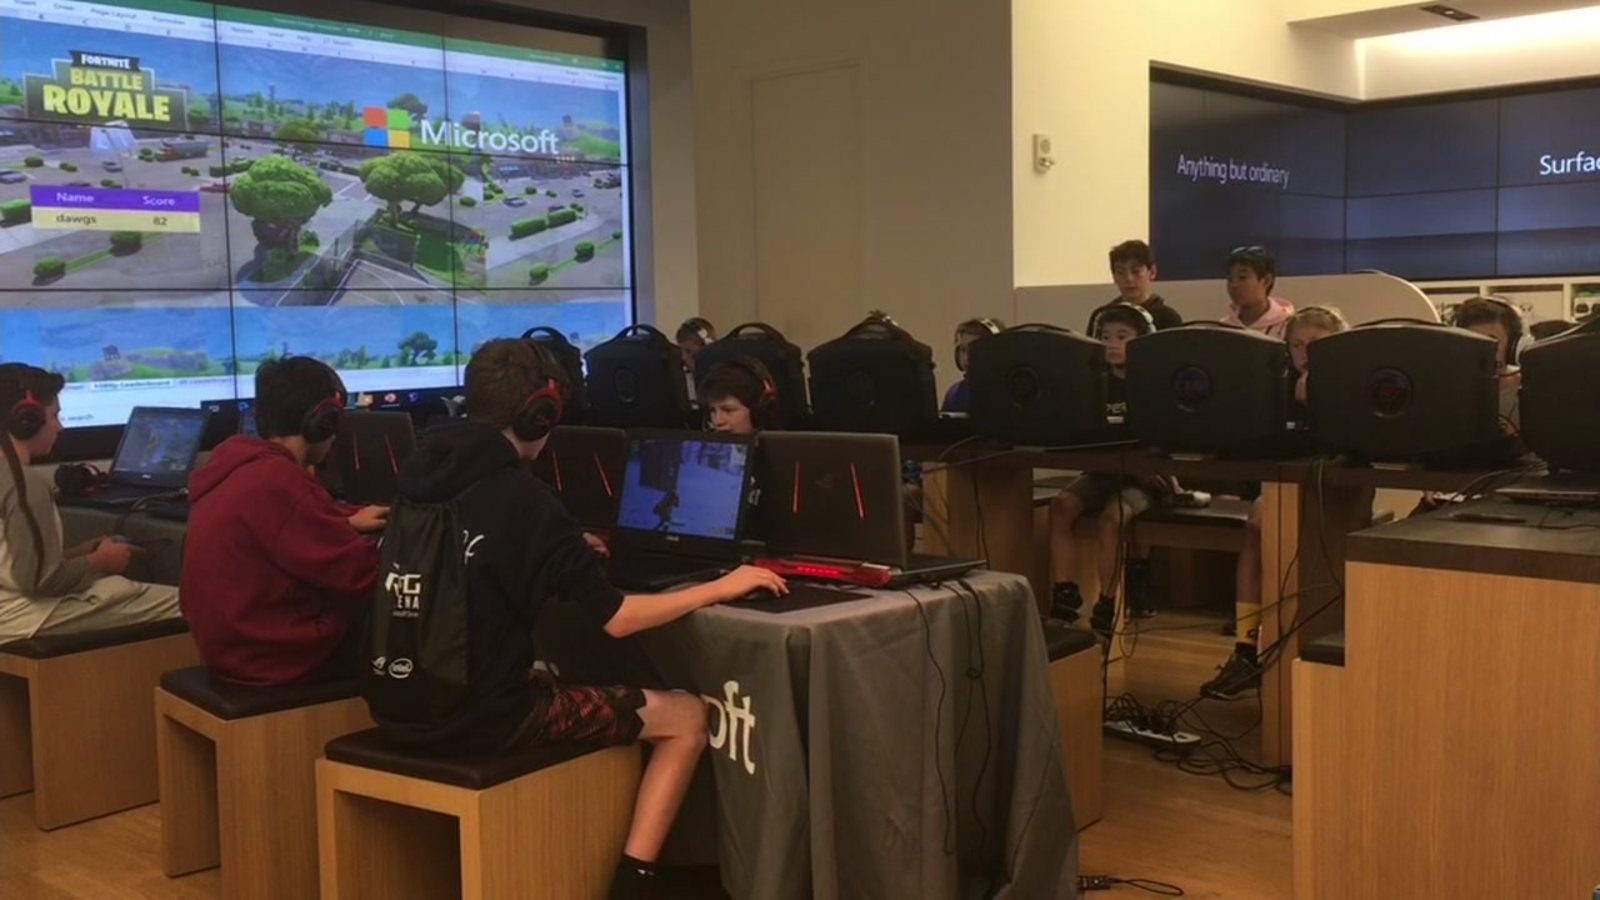 Fortnite Battle Royale against cancer at Palo Alto mall